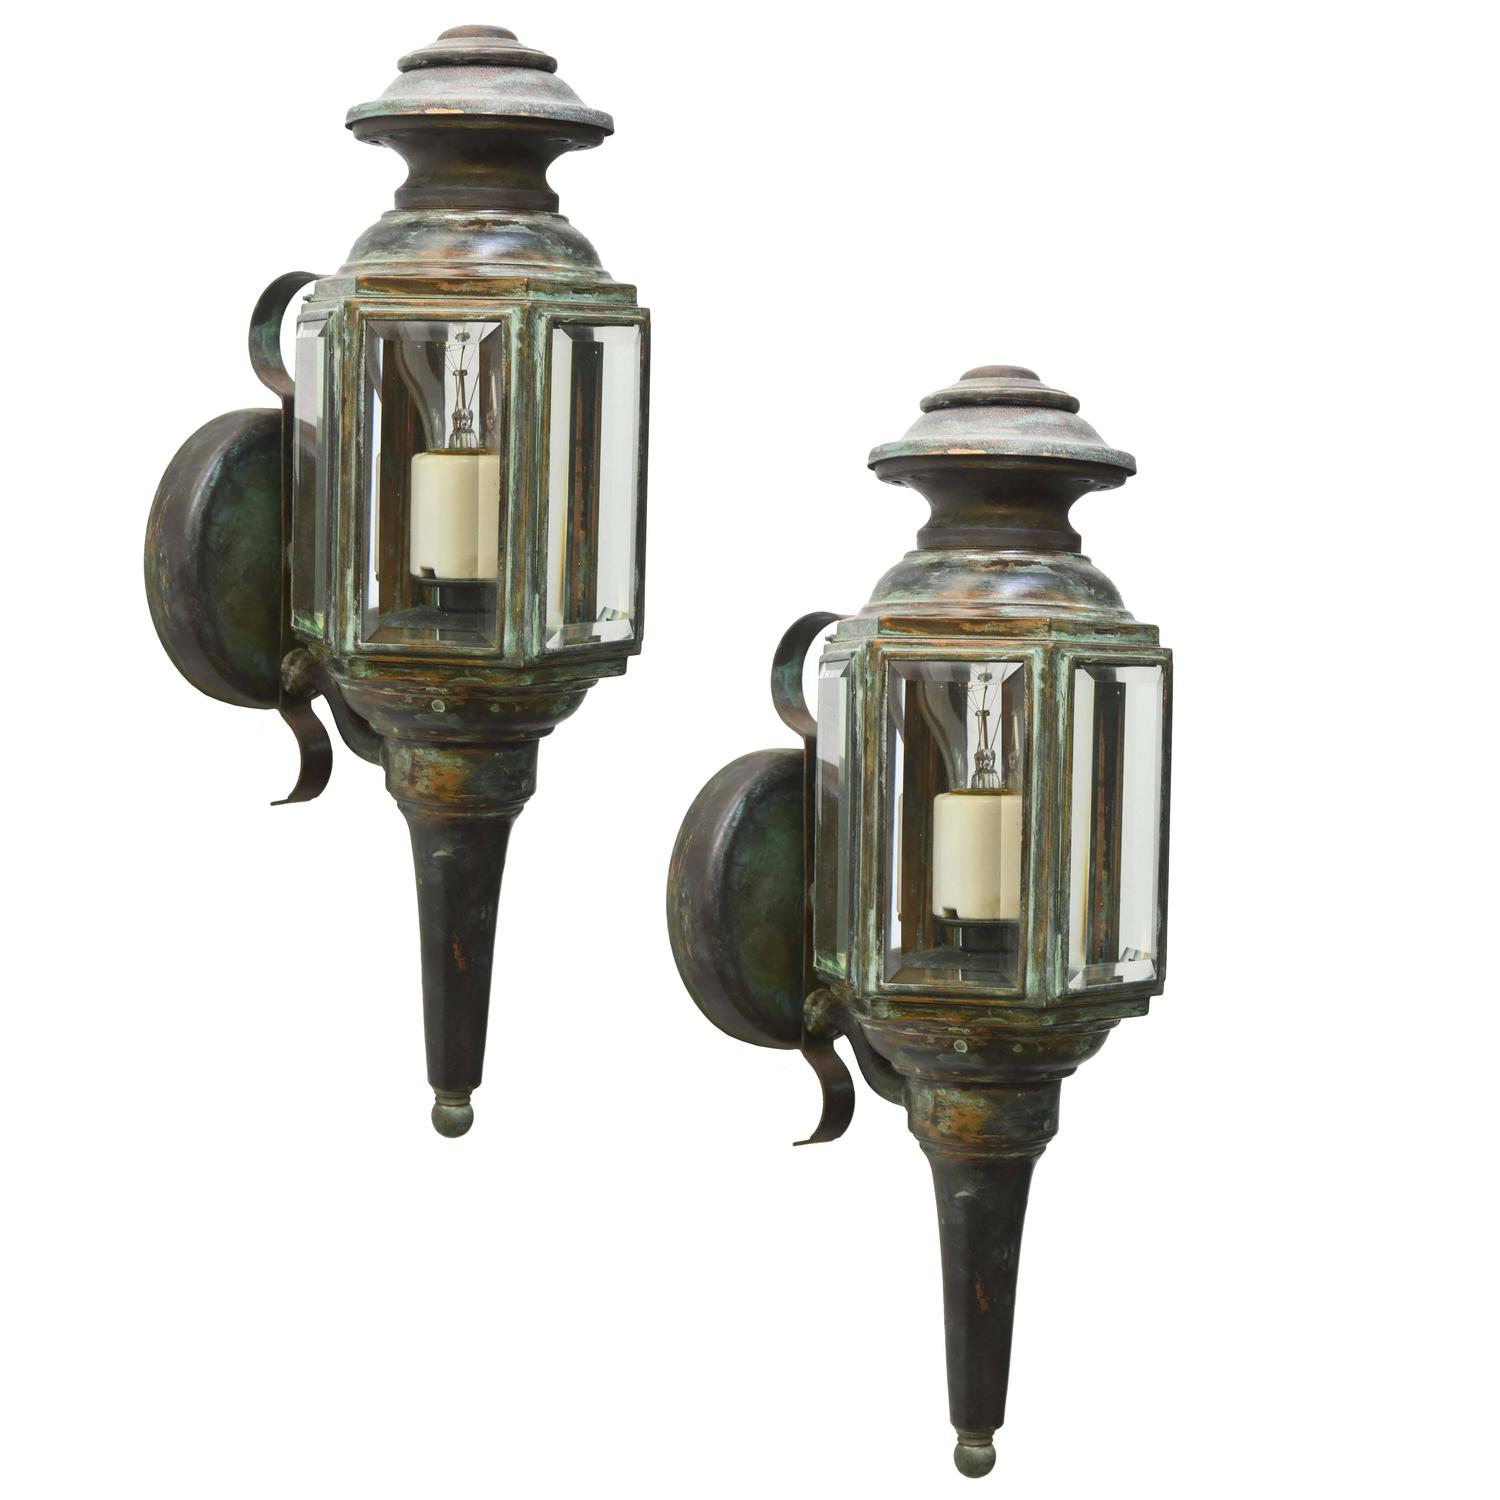 Pair of exterior carriage lights with vertigris finish for sale at 1stdibs Exterior carriage house lights